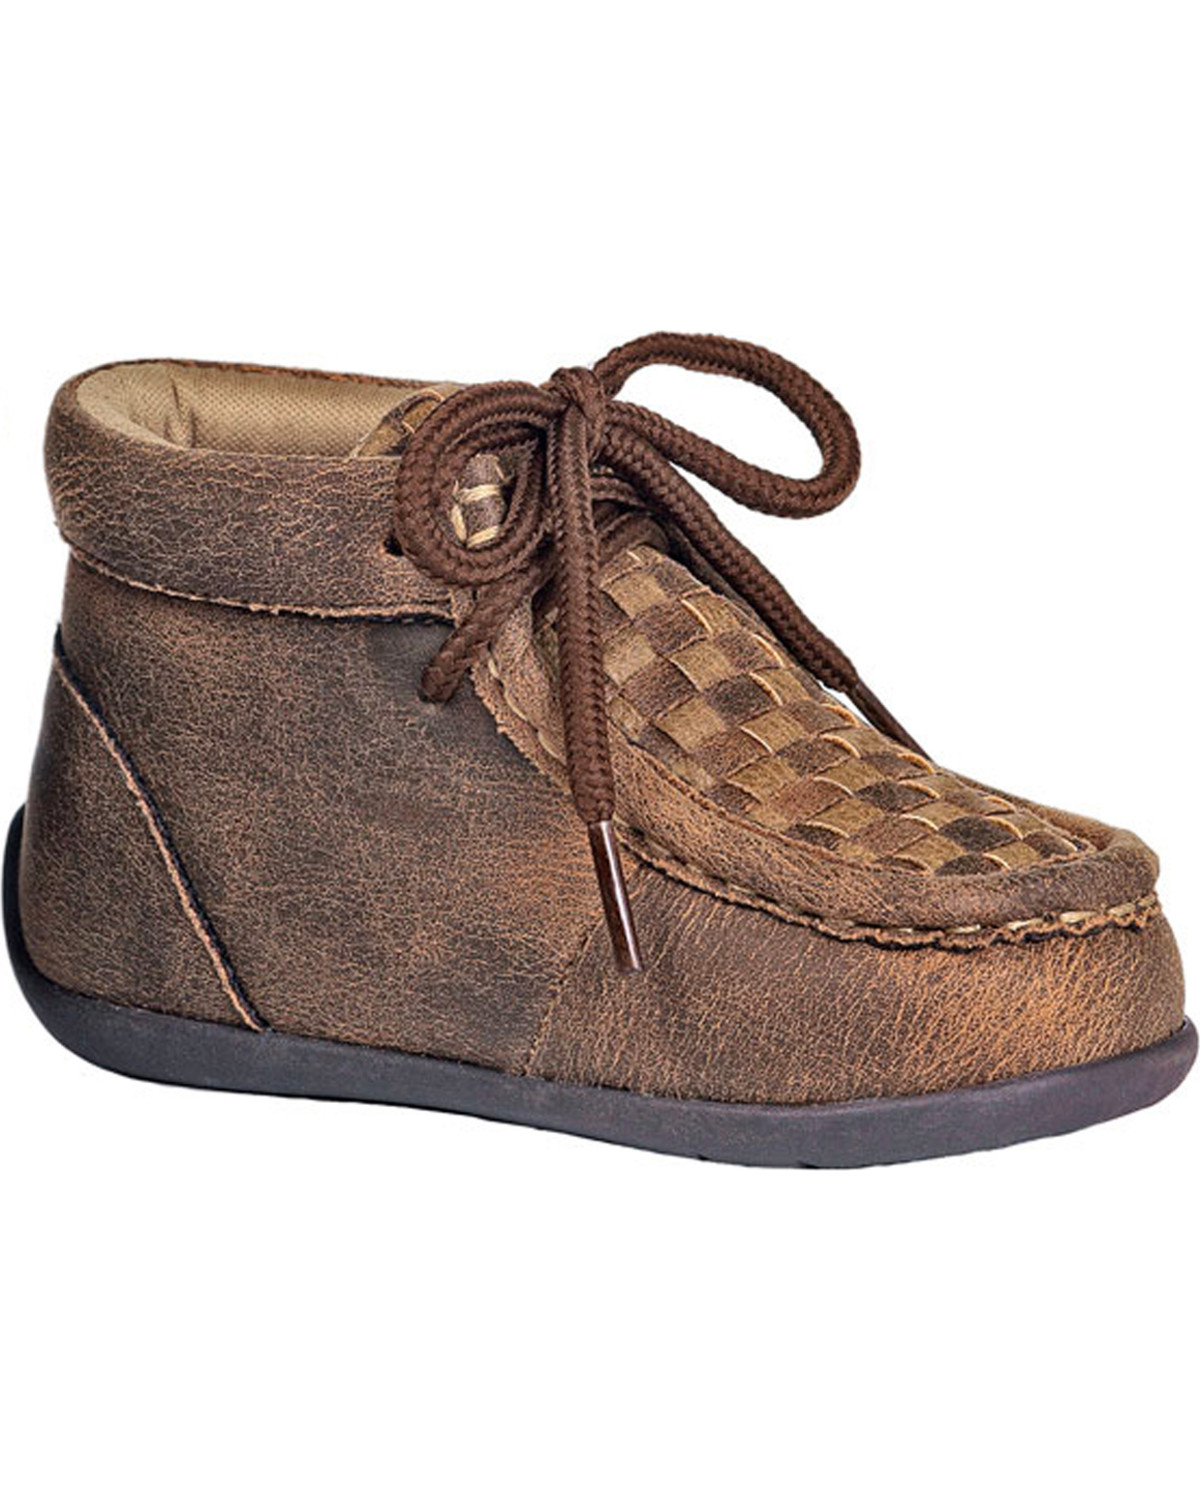 07c8d9c21 Zoomed Image Double Barrel Toddler Boys' Brown Carson Chukka Shoes, Brown,  ...